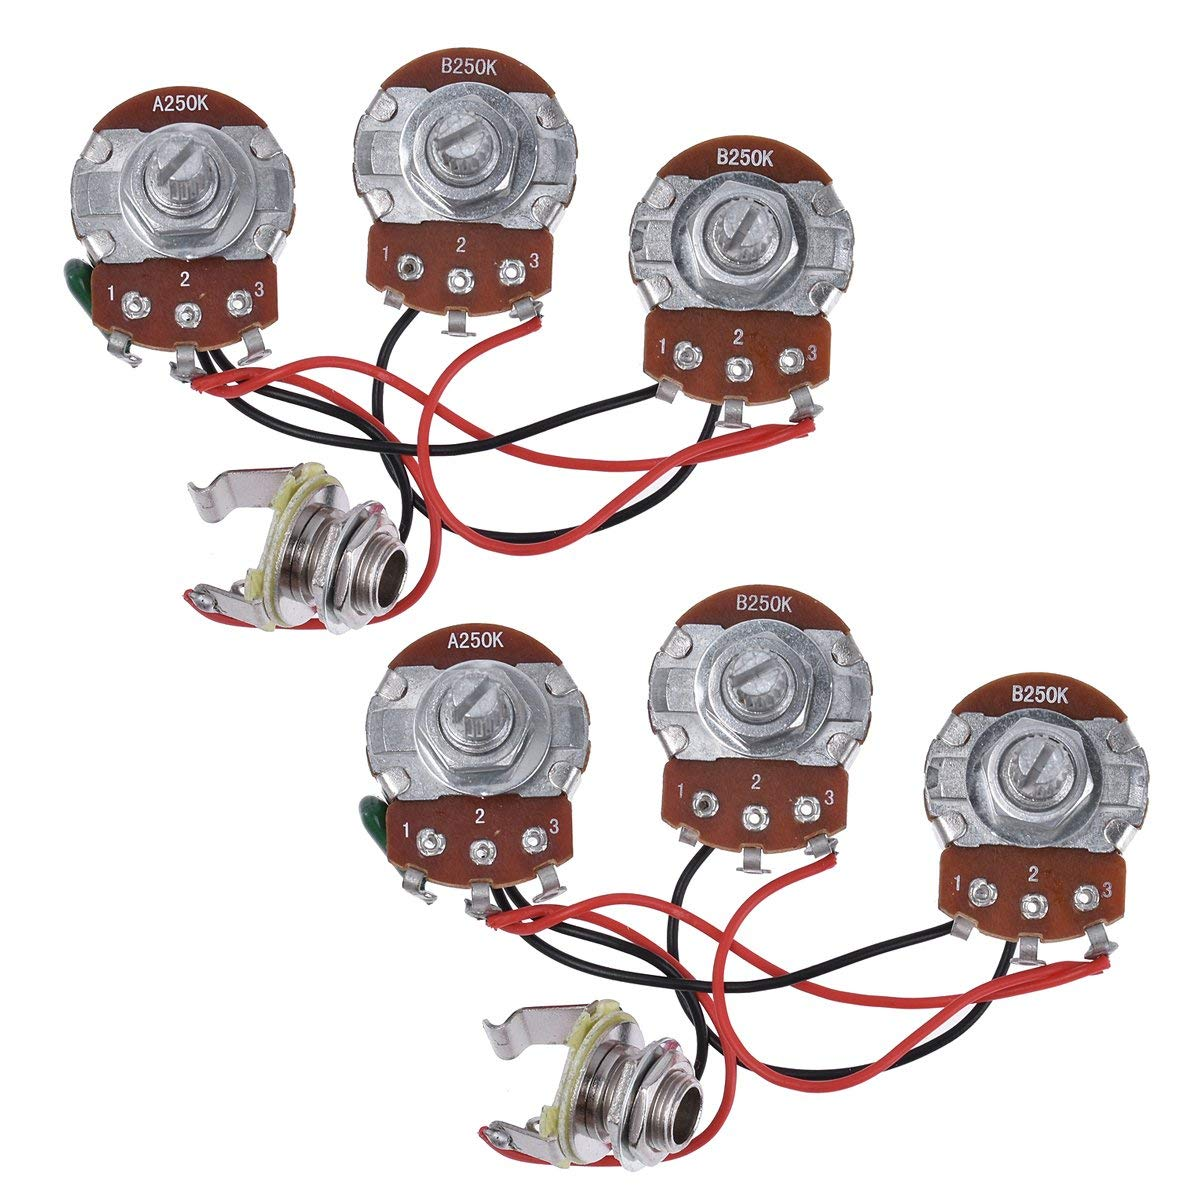 Cheap Guitar Volume And Tone Pots Find Wiring Harness Jack 3 500k 5 Way Switch For Fender Get Quotations Bass Prewired Kit 250k 2 1 Jazz Parts